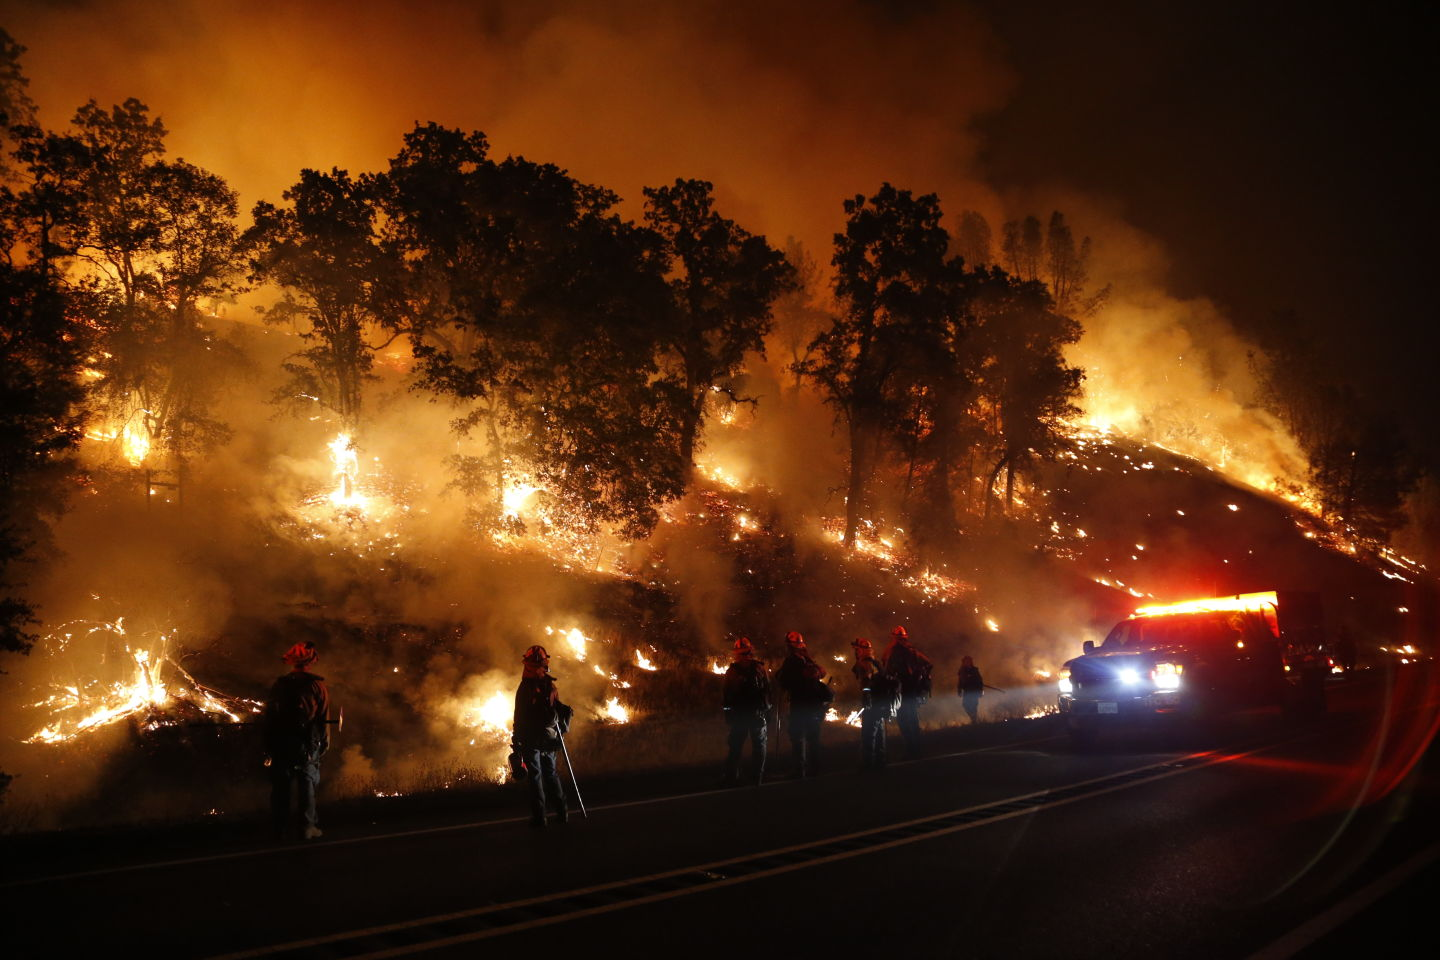 Firefighters with the Marin County Fire Department's Tamalpais Fire Crew monitor a backfire as they battle the Valley Fire.   Stephen Lam/Getty Images